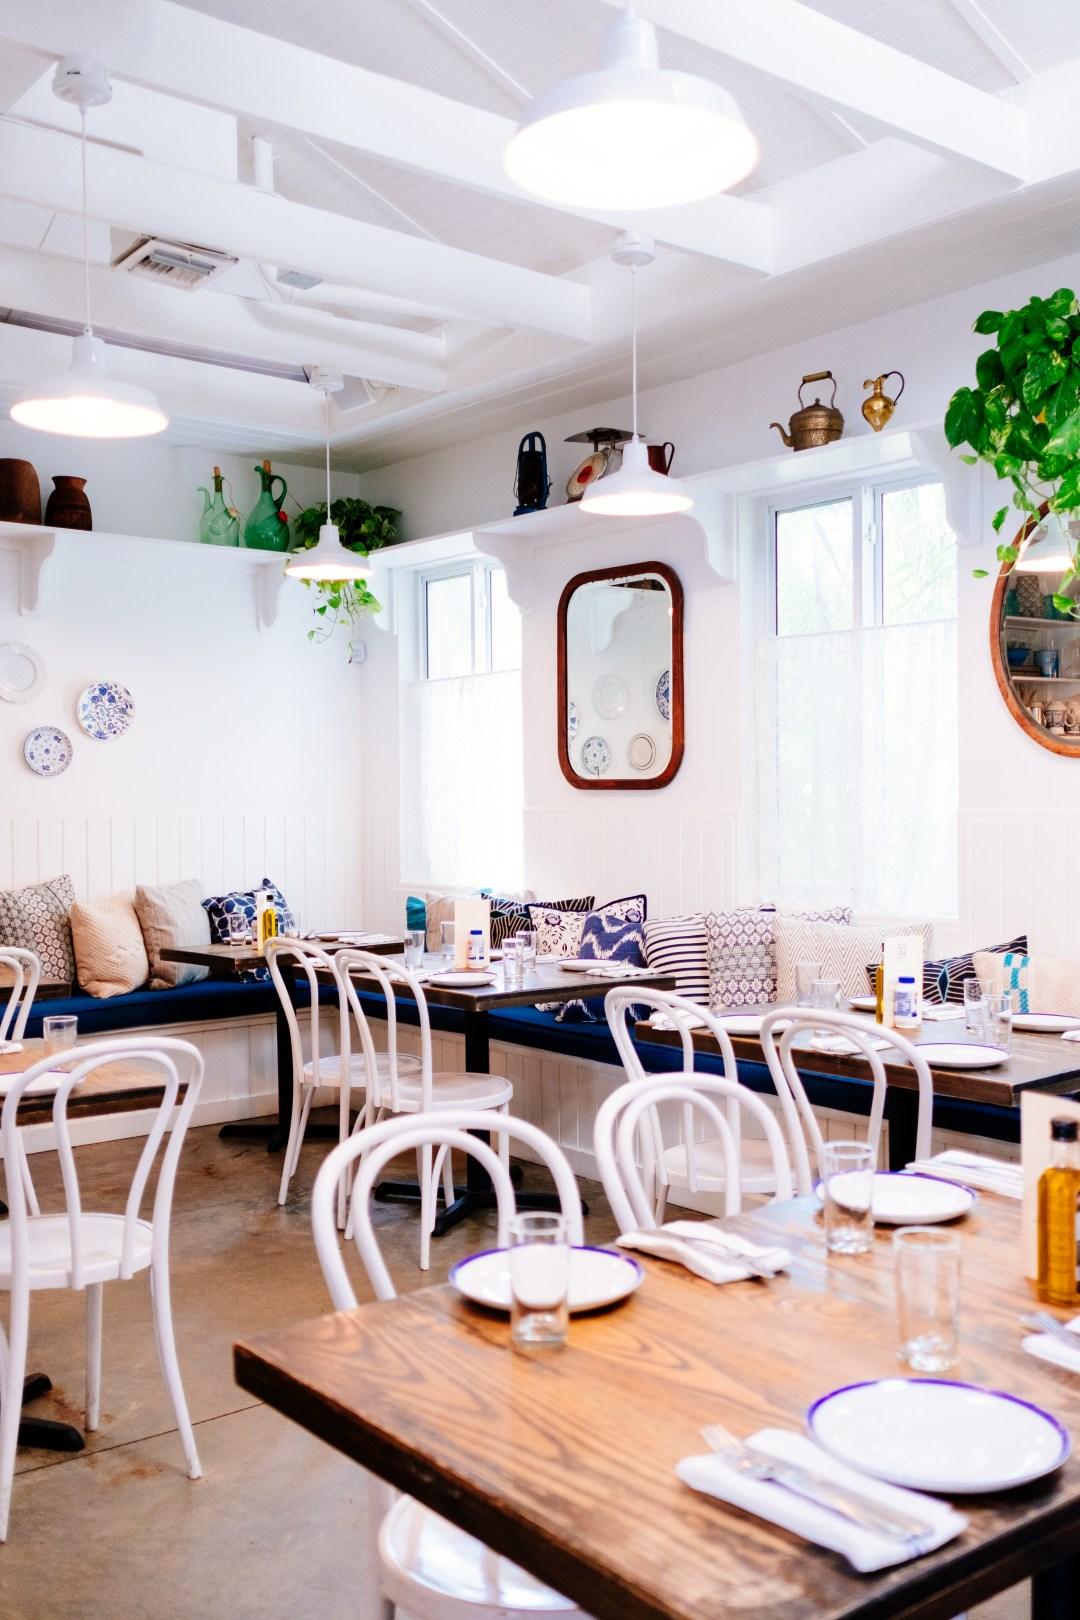 Store Banne 6 X 3.5 M Cafe Restaurant Tables And Chairs Hd Photo By Jason